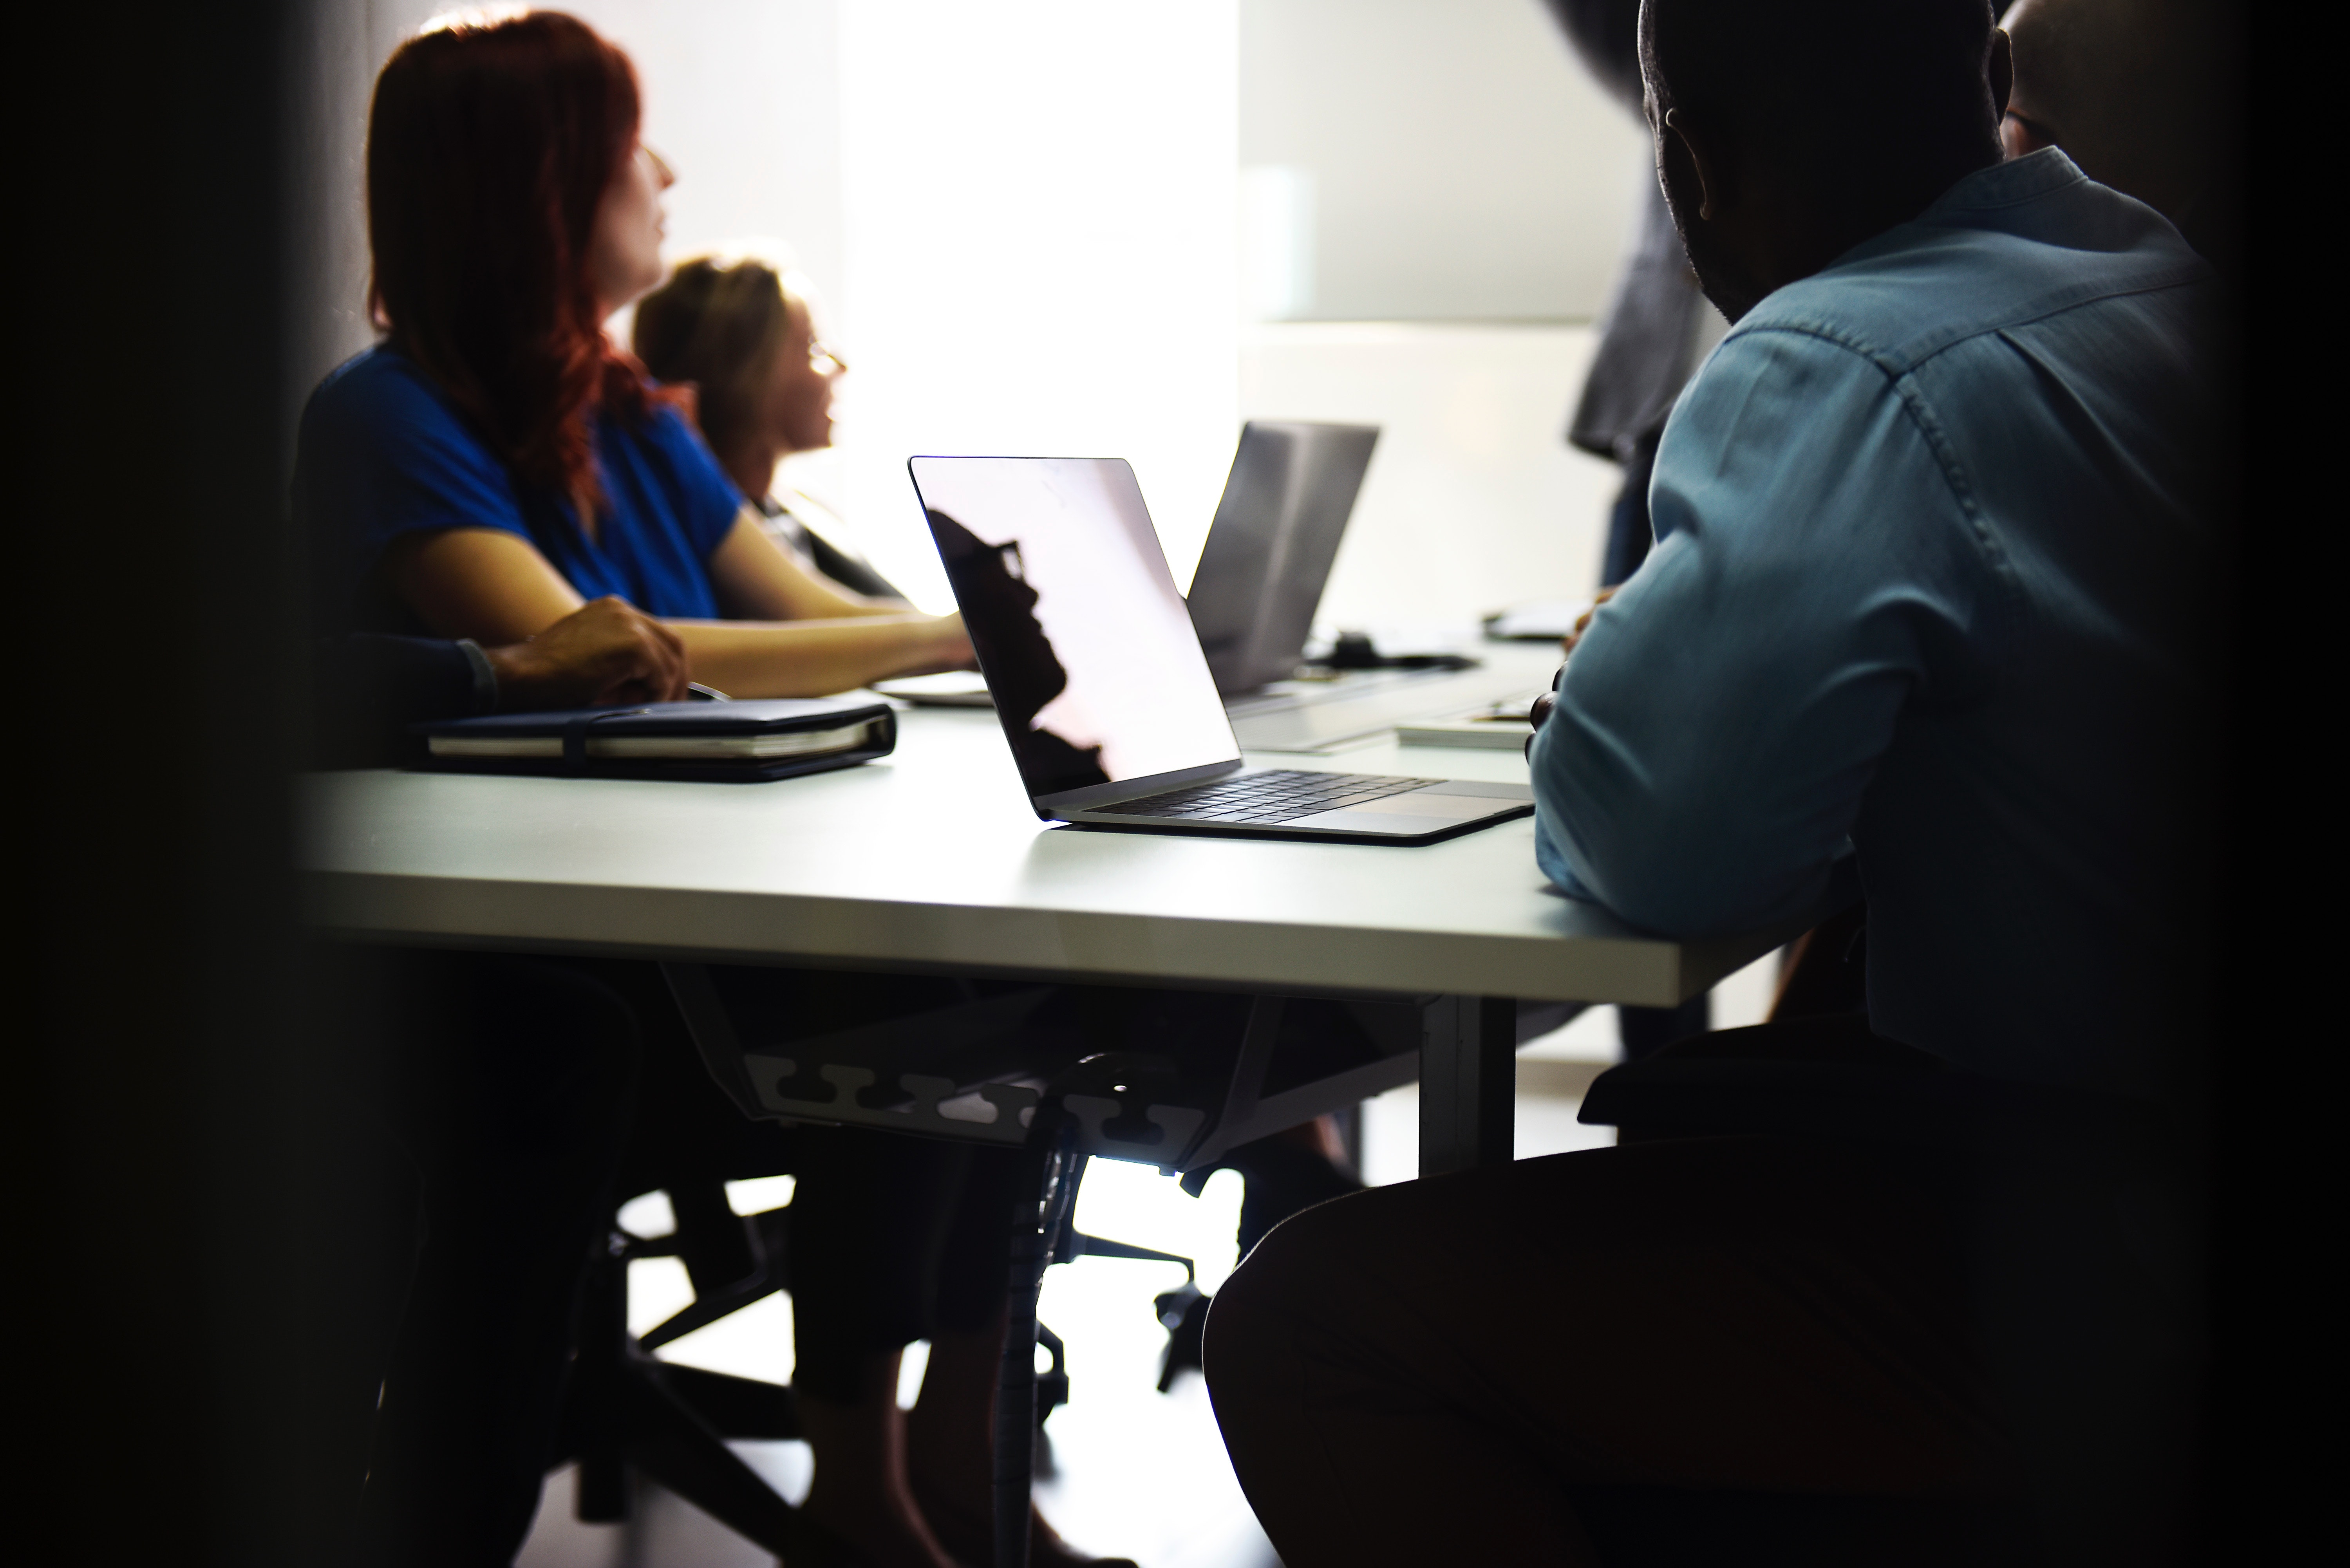 A blurred group on employees sitting at a conference table while diverting their attention to an off-screen presentation speaker.